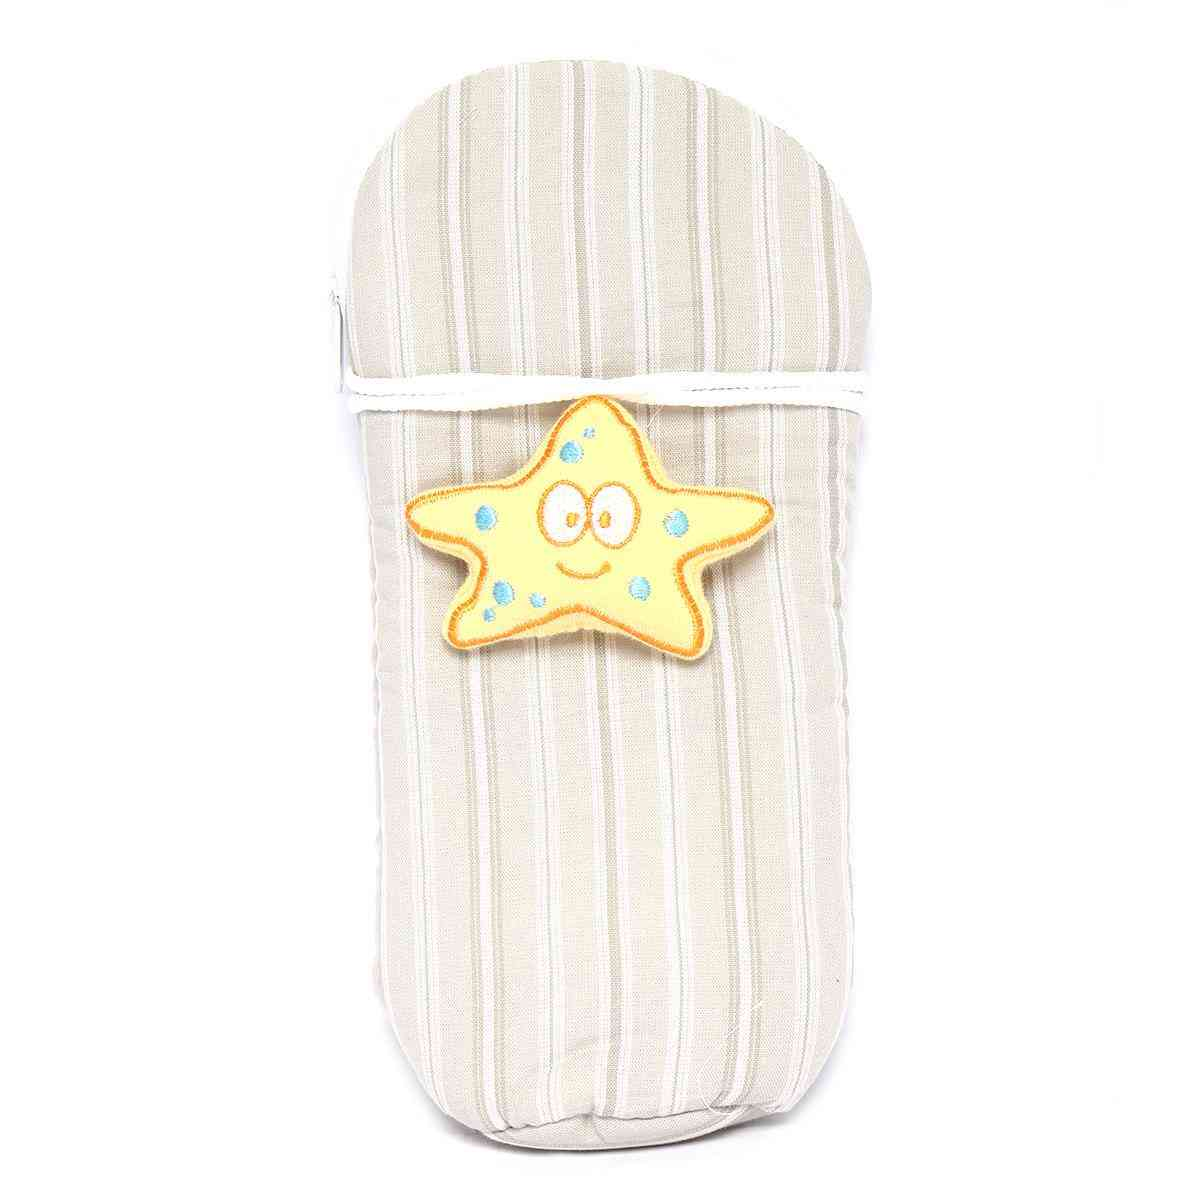 Vitamin Baby Cartoon Character 9x4 Inches Feeder Cover for Feeder Bottle with String  Gray